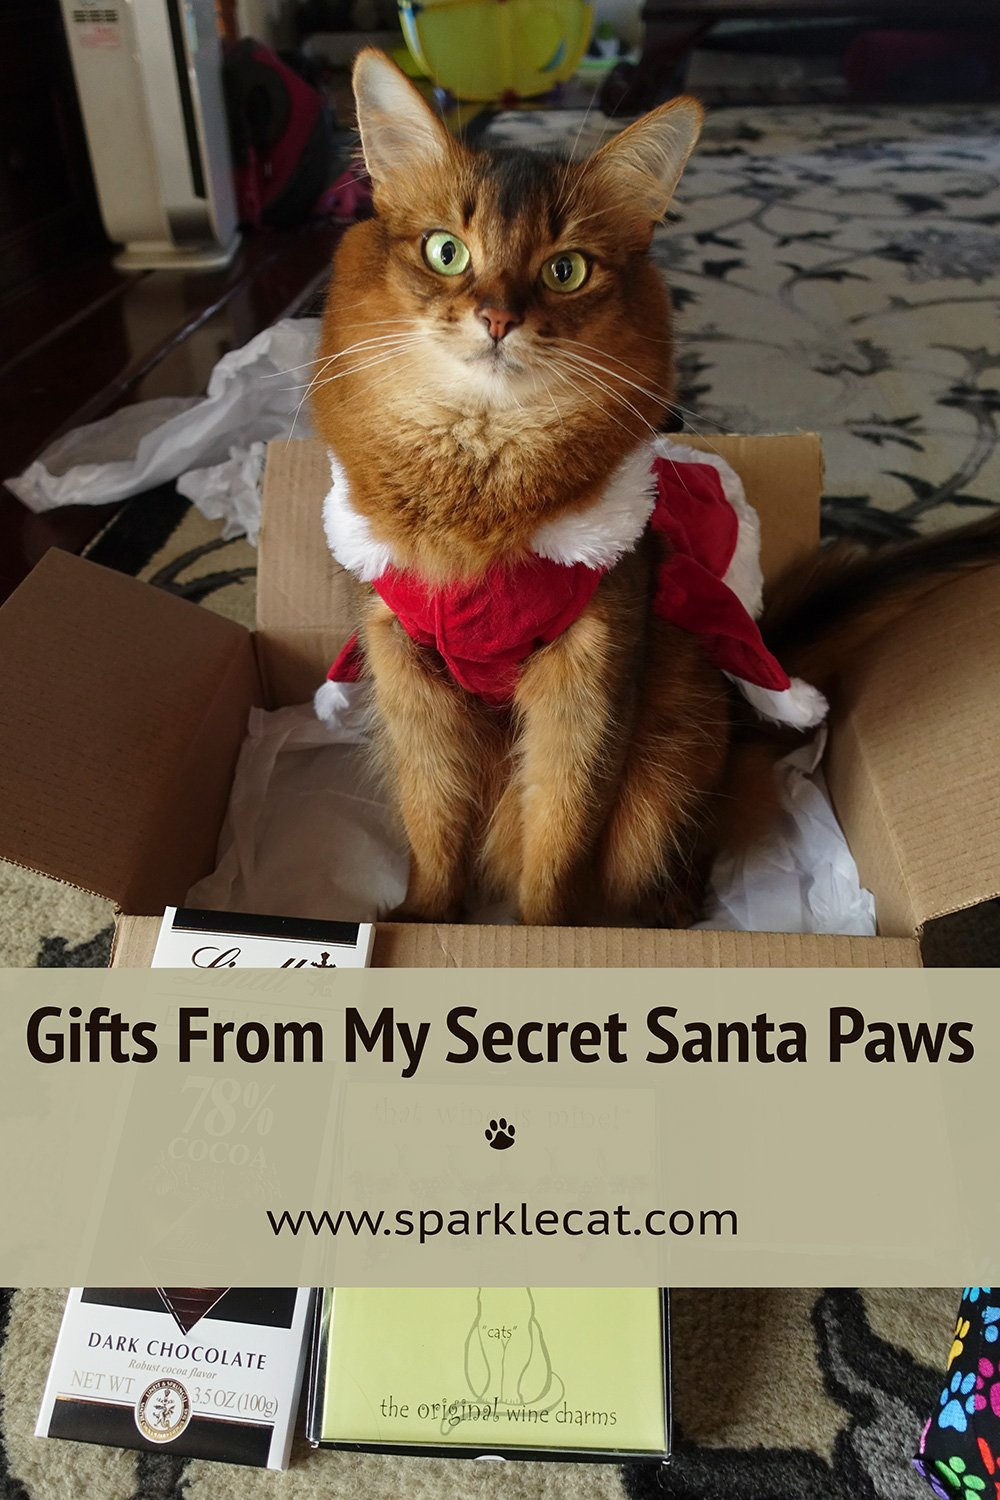 My Secret Paws Gifts